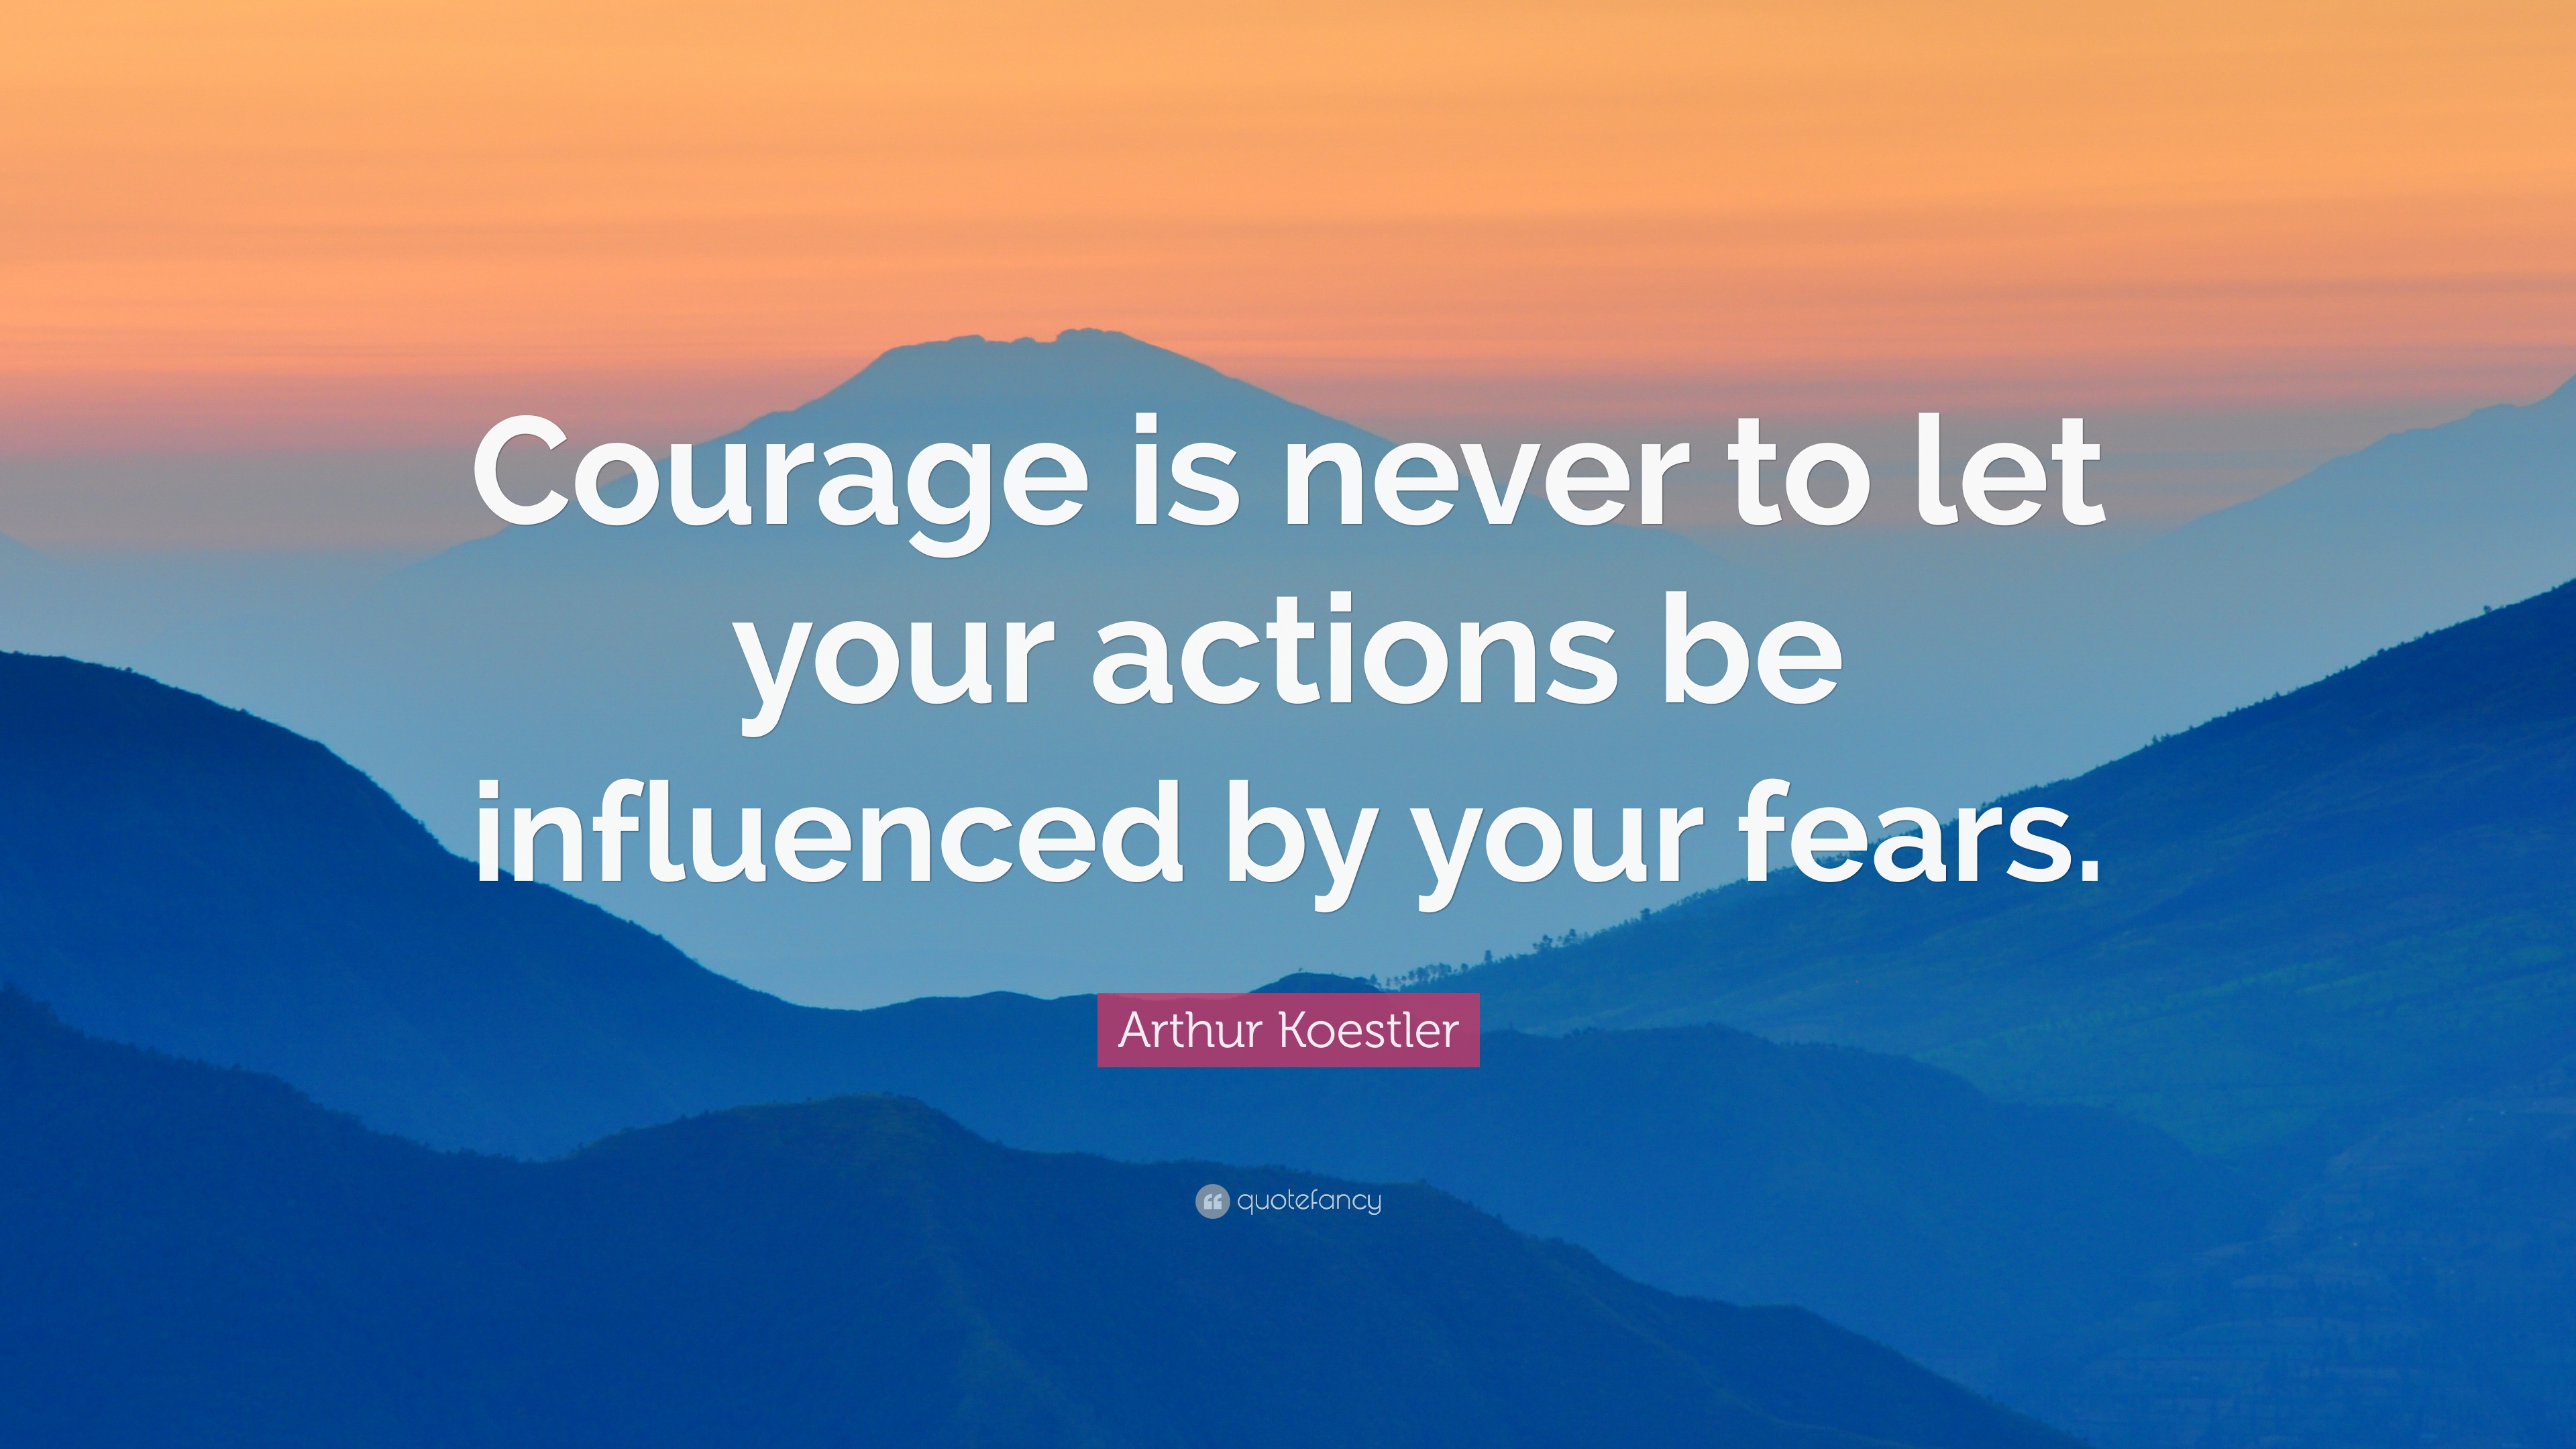 Business Quotes Courage Is Never To Let Your Actions Be Influenced By Fears